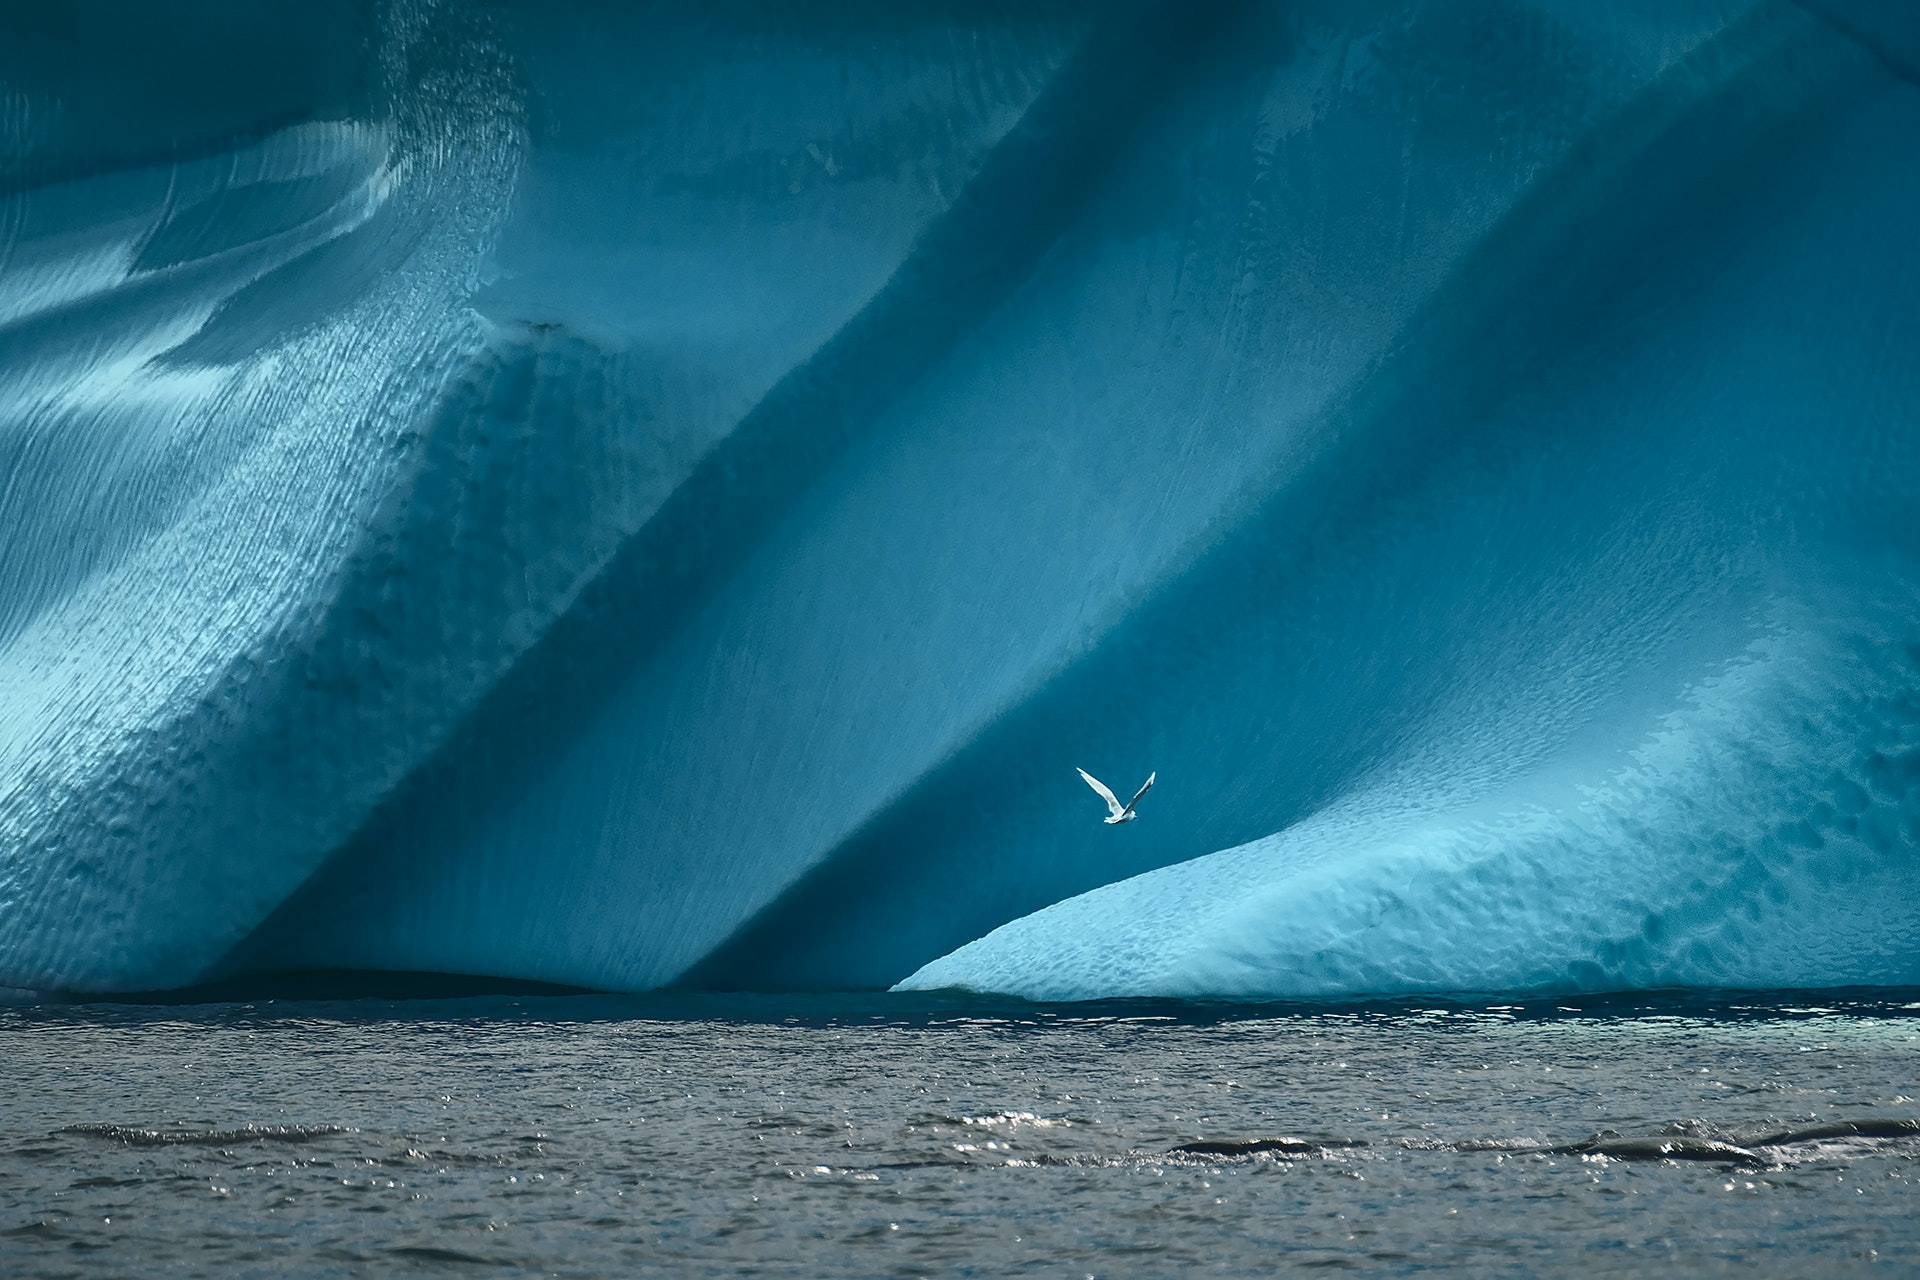 GREENLAND_bird_in_front_of_Iceberg_by_Maria_Sahai